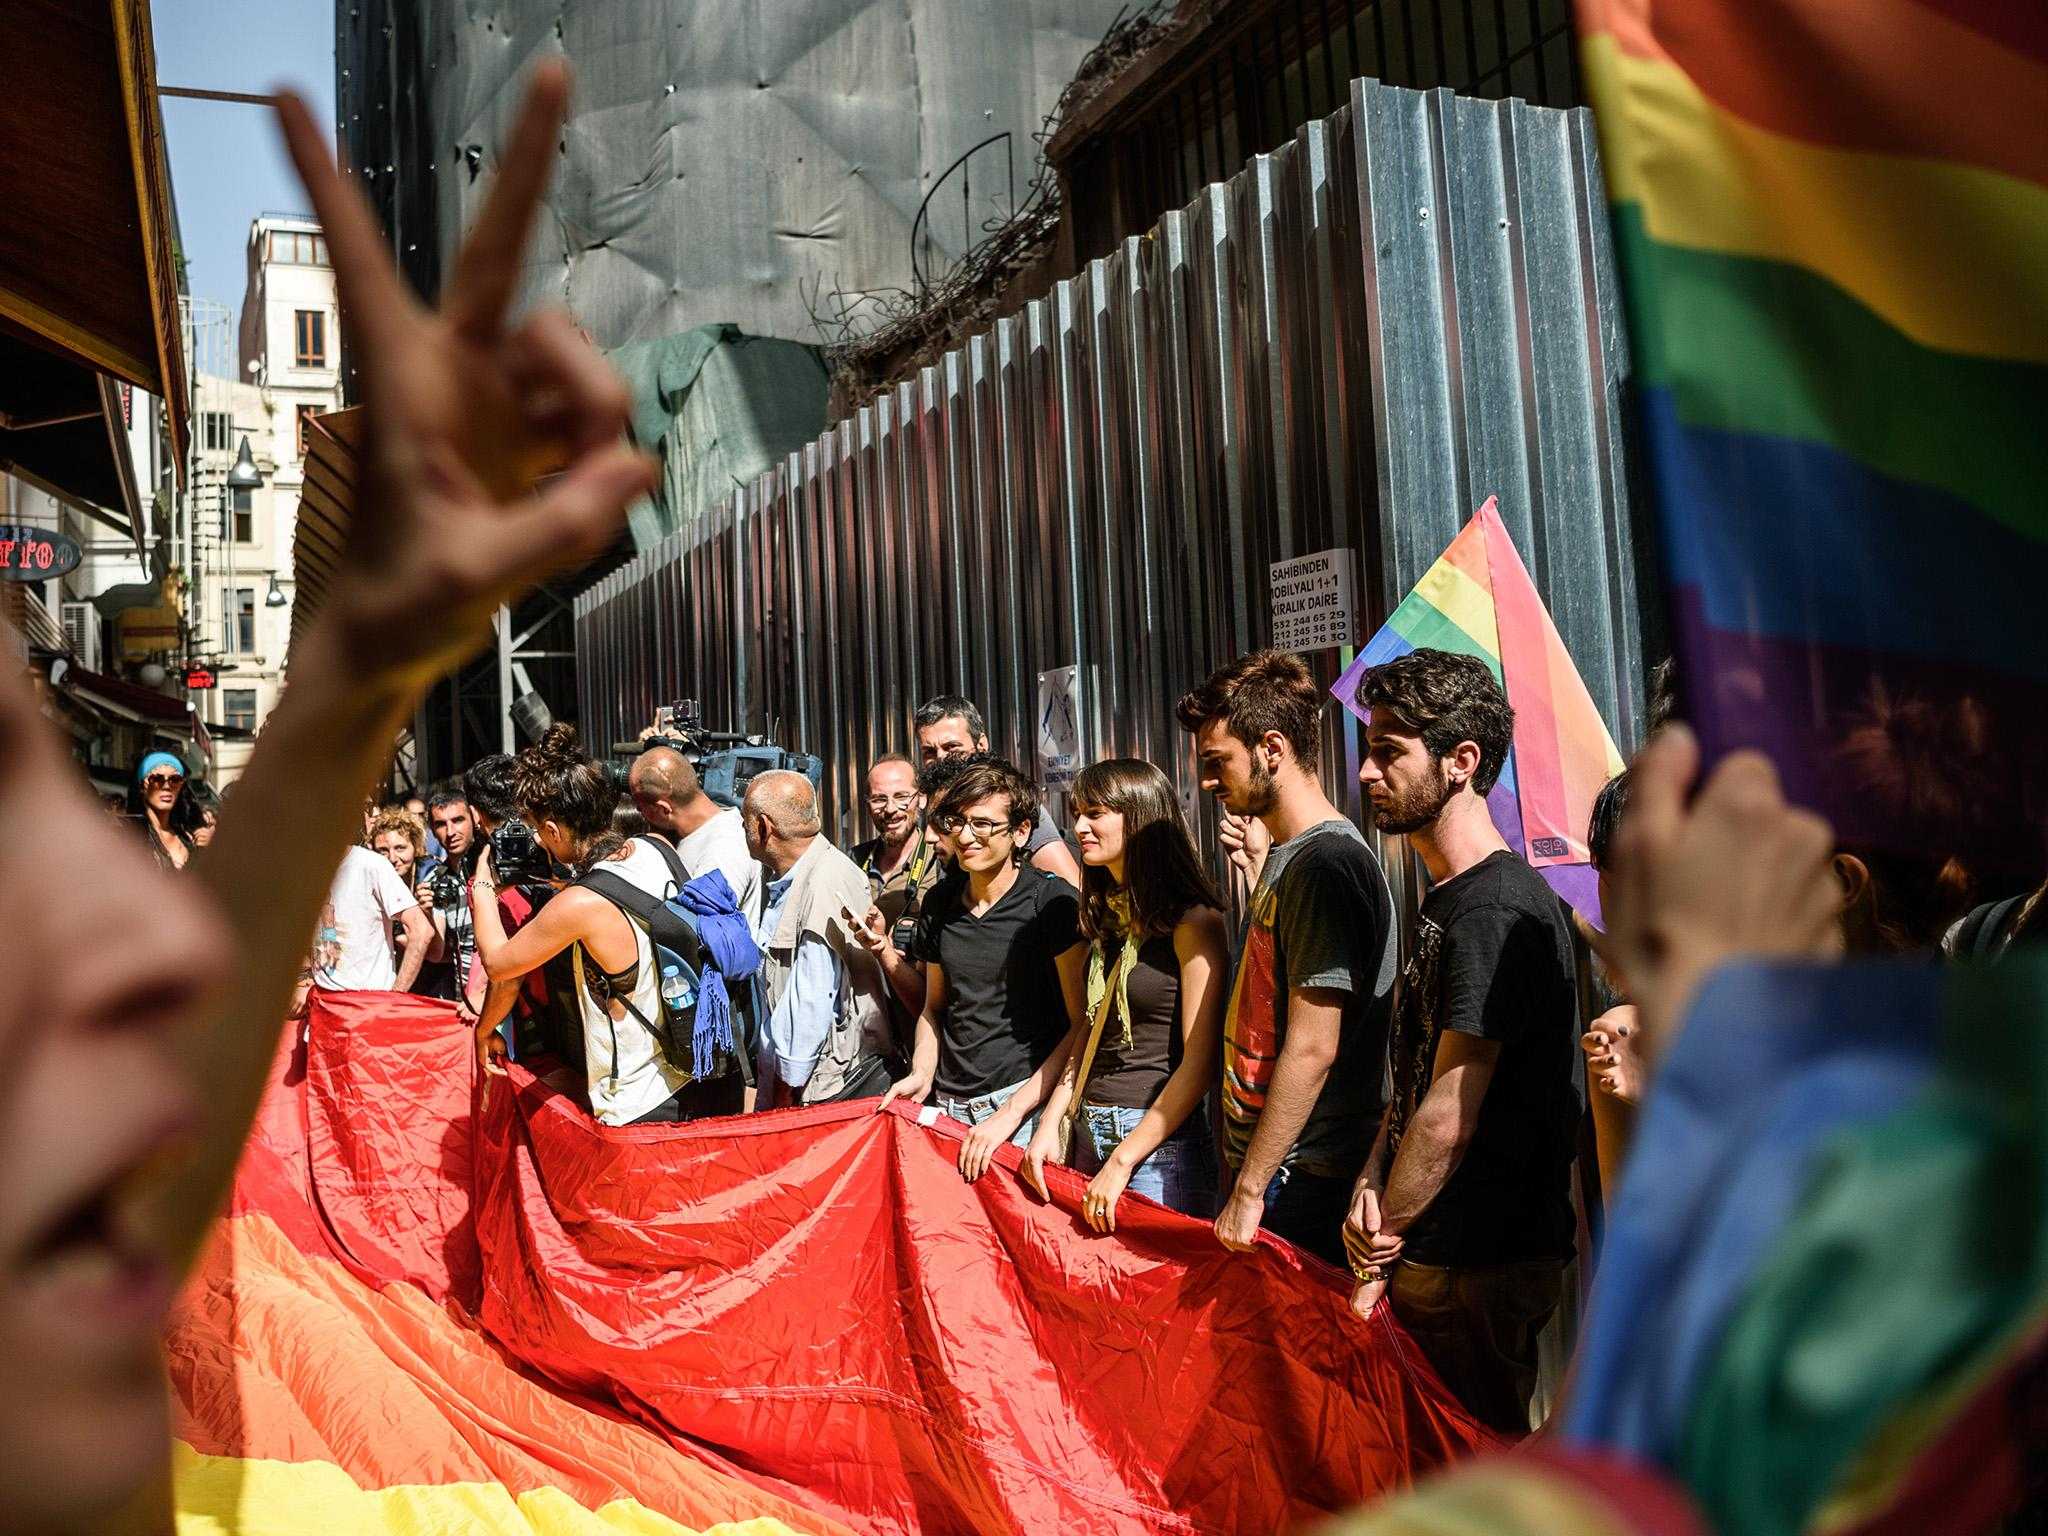 German MP claims he was 'violently arrested' during Istanbul gay pride protest